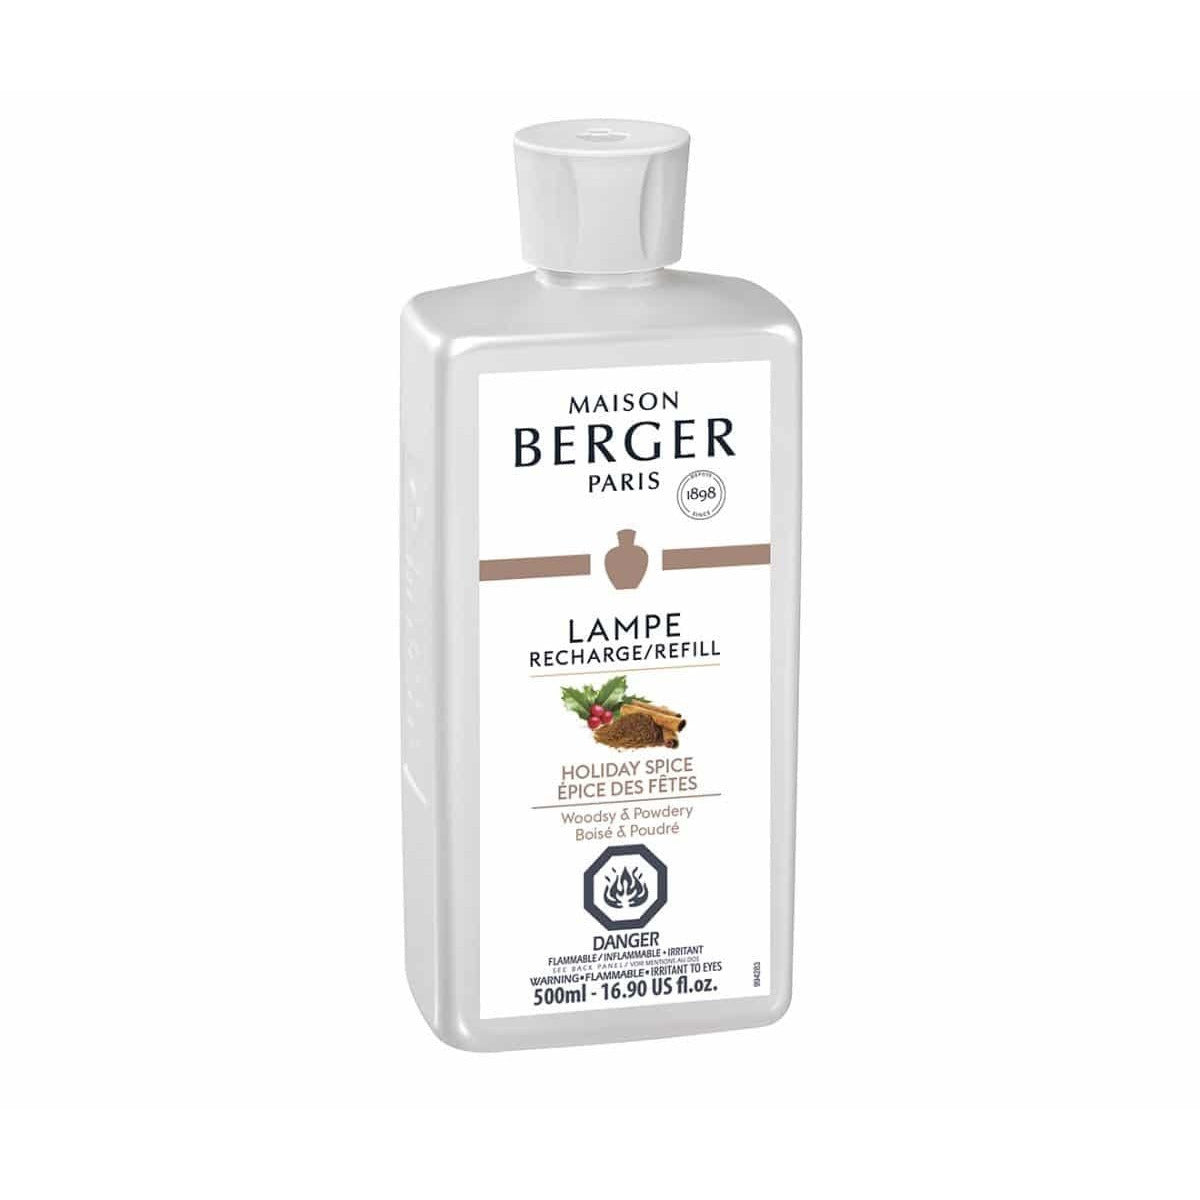 Holiday Spice - Lampe Maison Berger Fragrance - 500 Ml - SALE